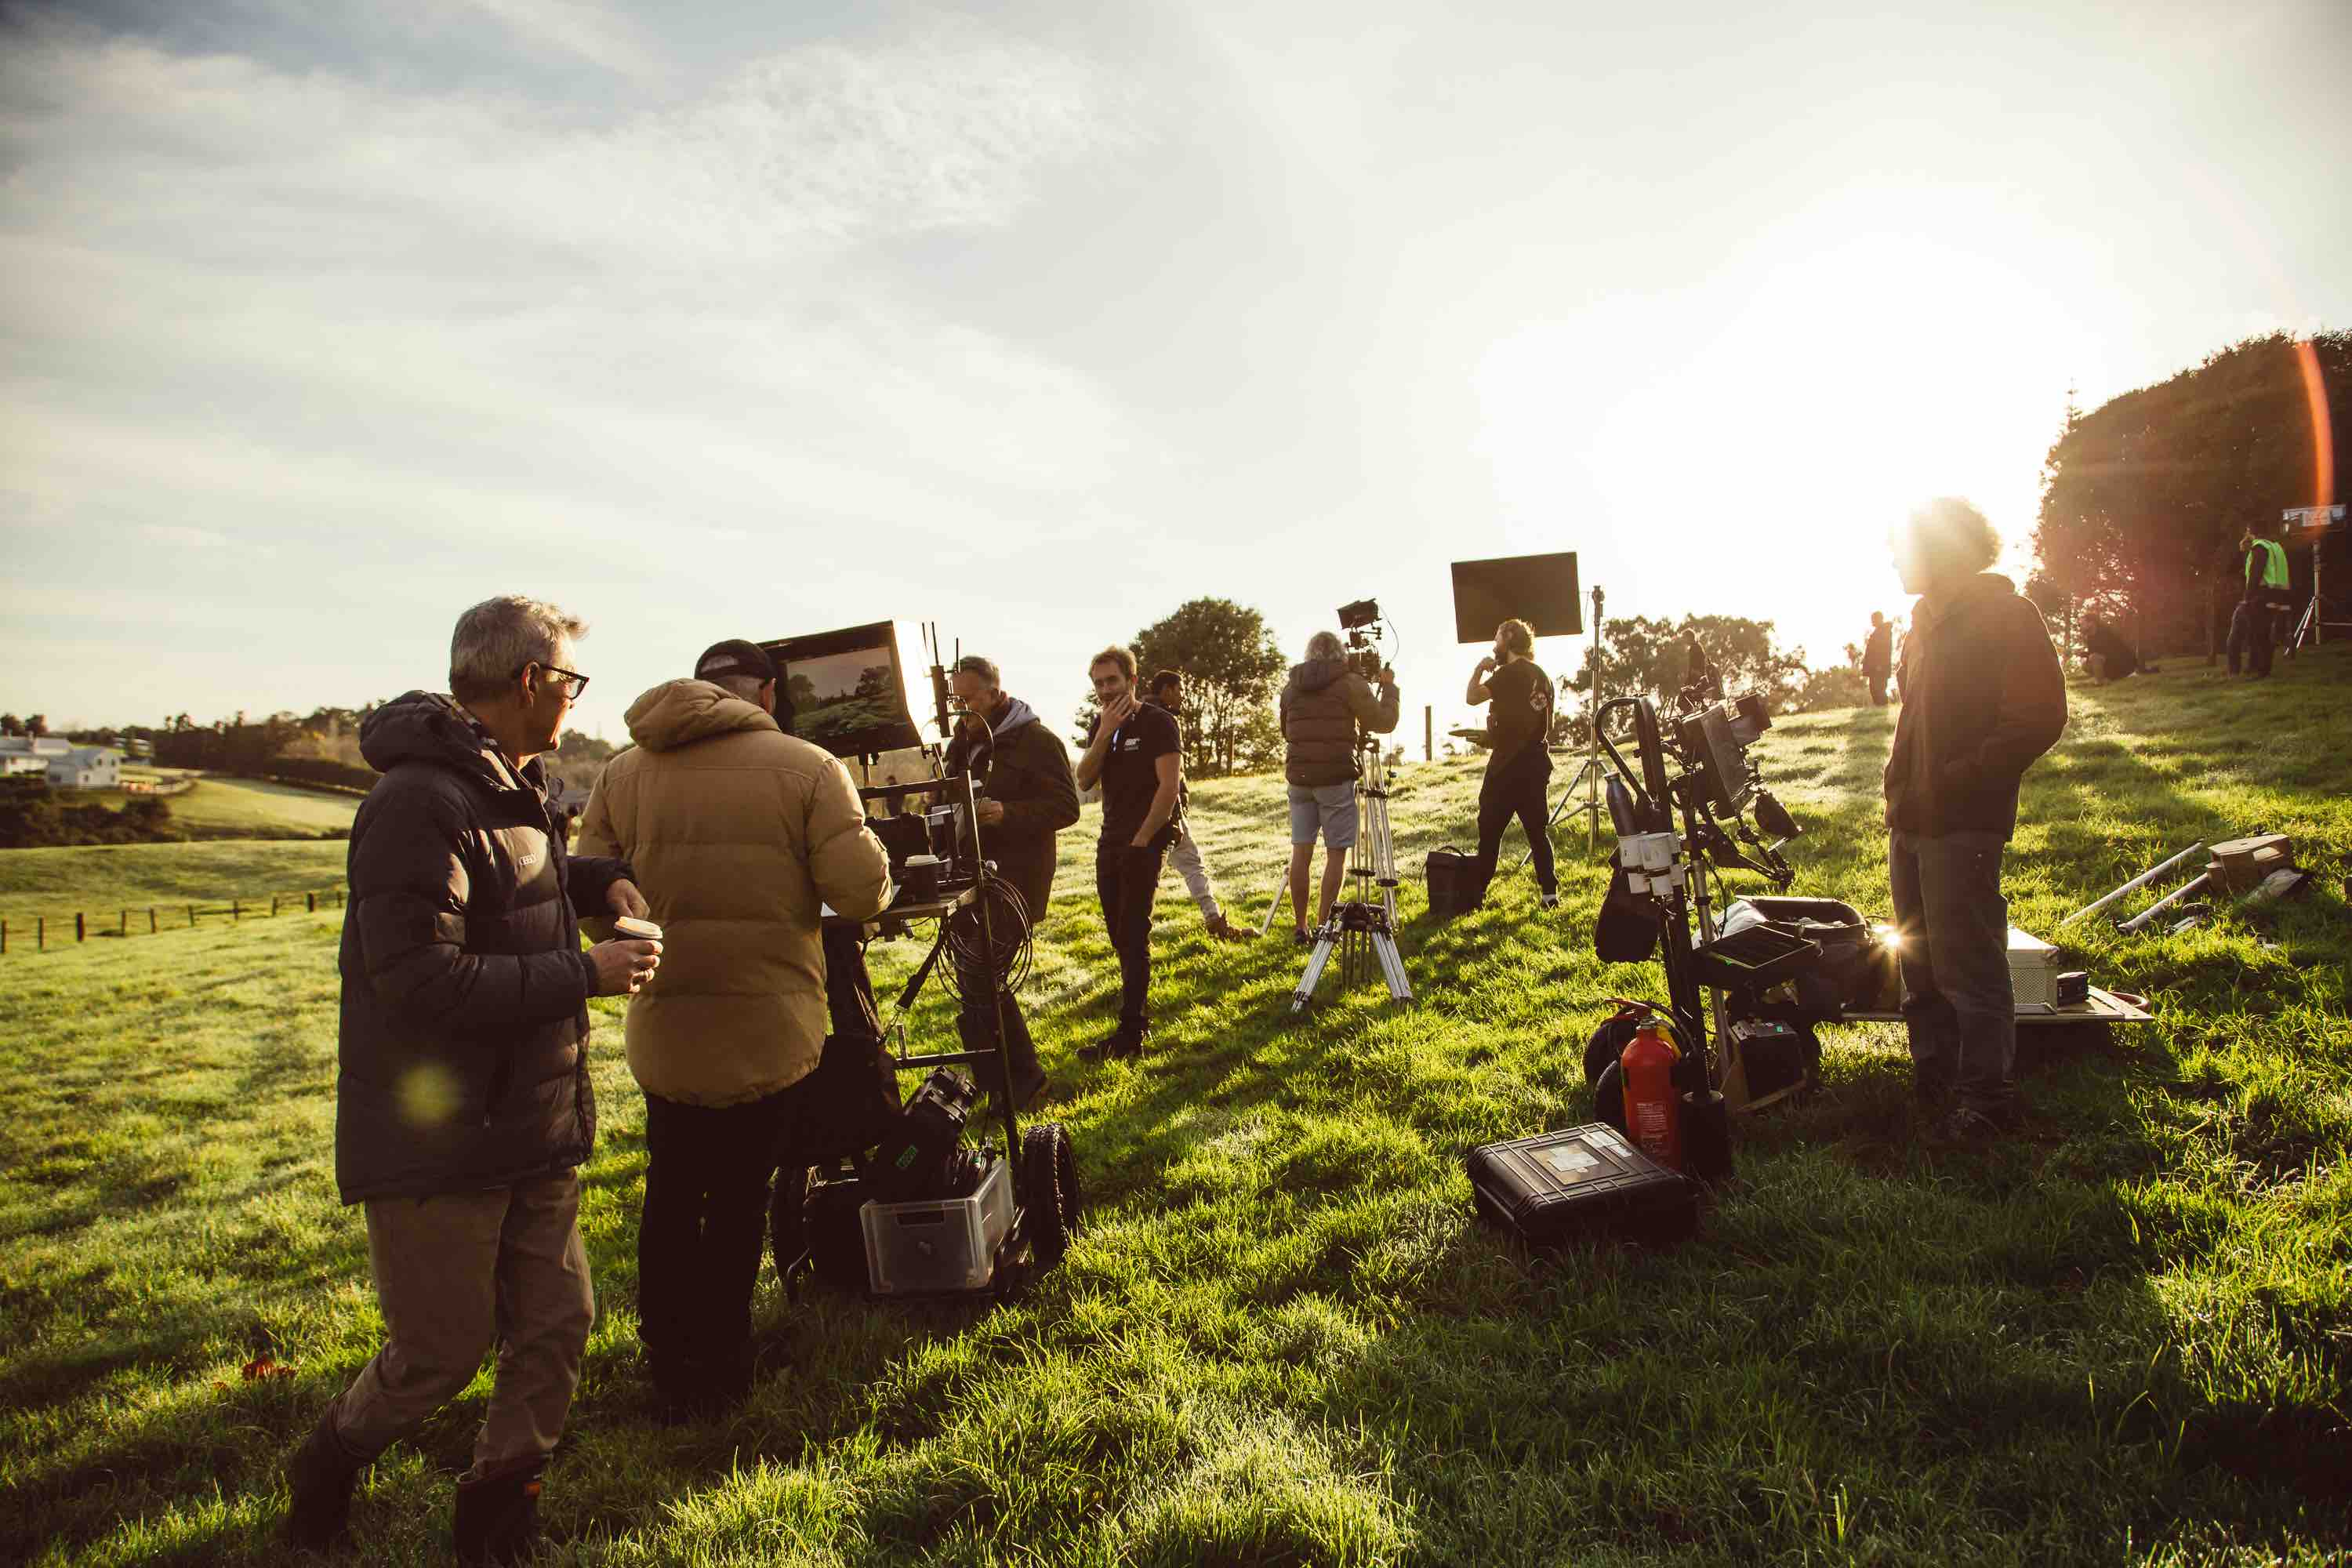 FMG launches new 'Life's a Dream' campaign via BCG2 and Film Construction